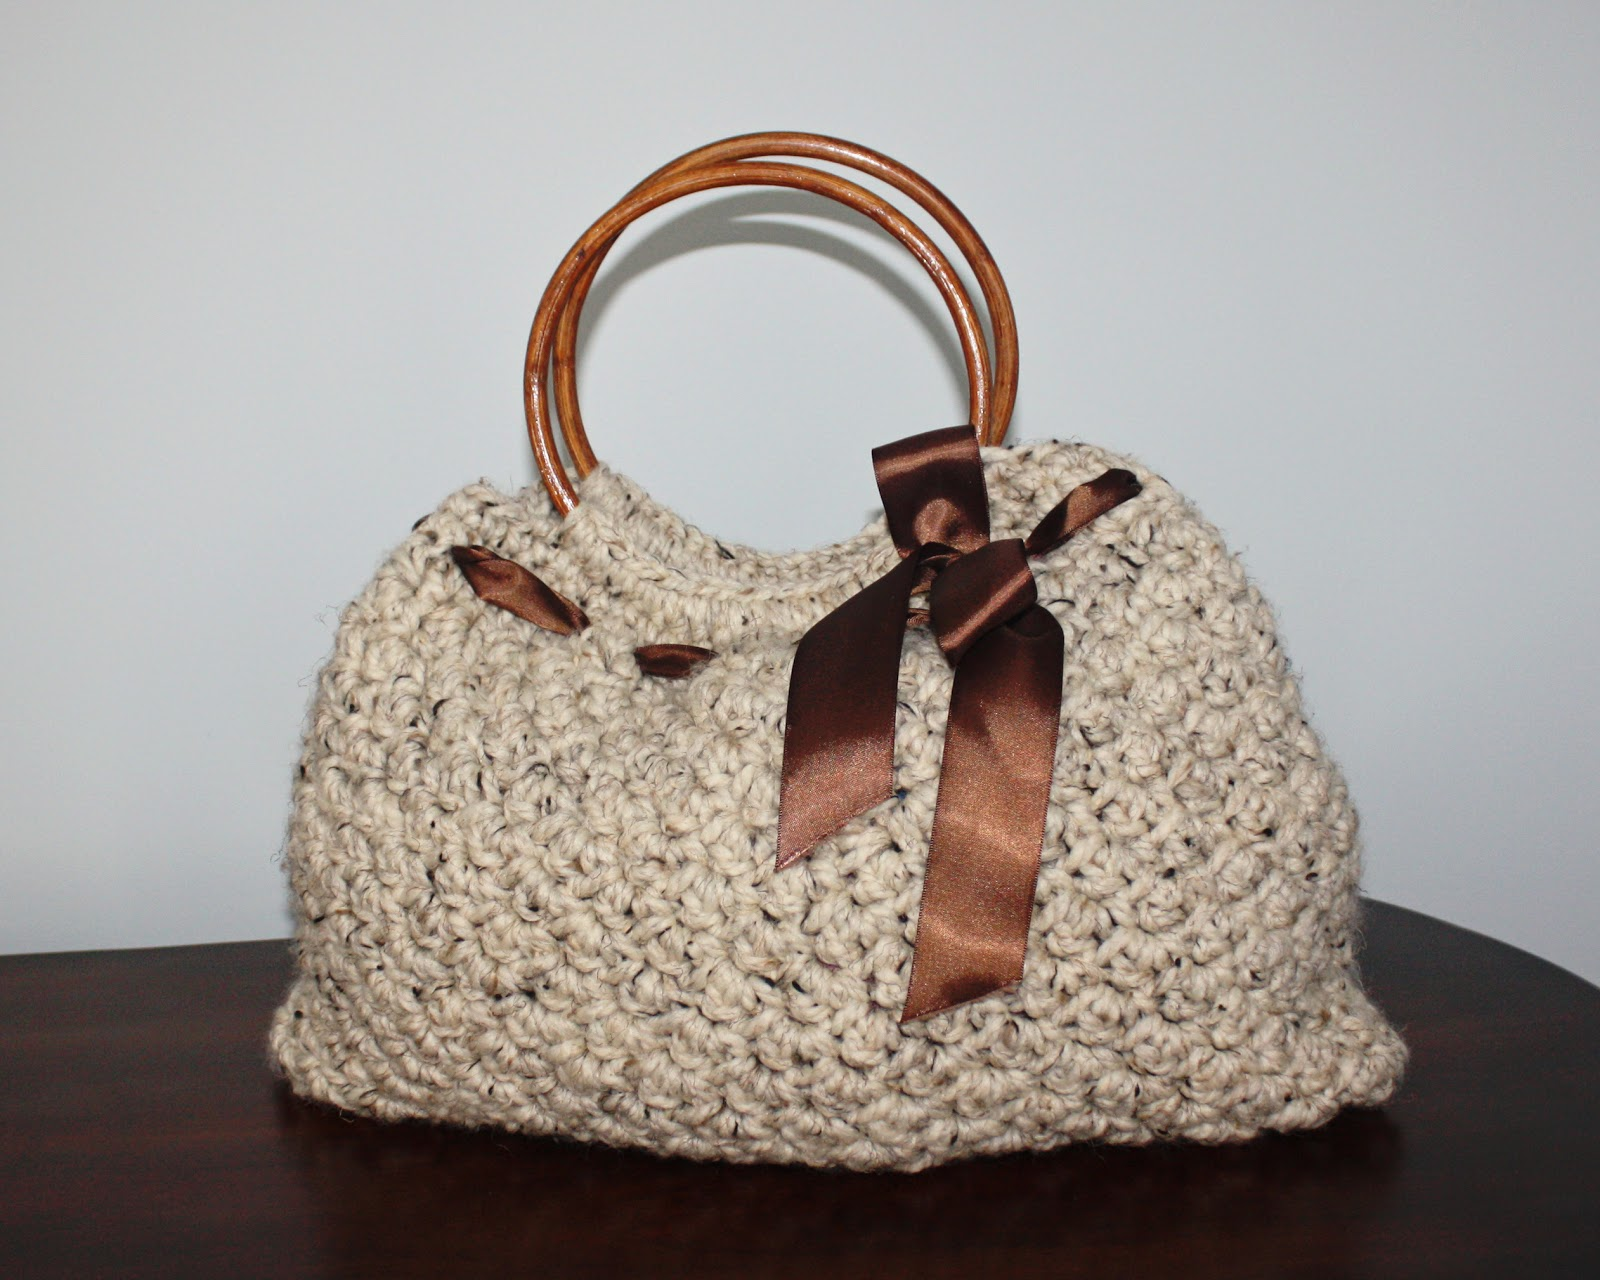 Crocheting Purses : Pretty Darn Adorable Crochet: Crochet Handbag/Purse